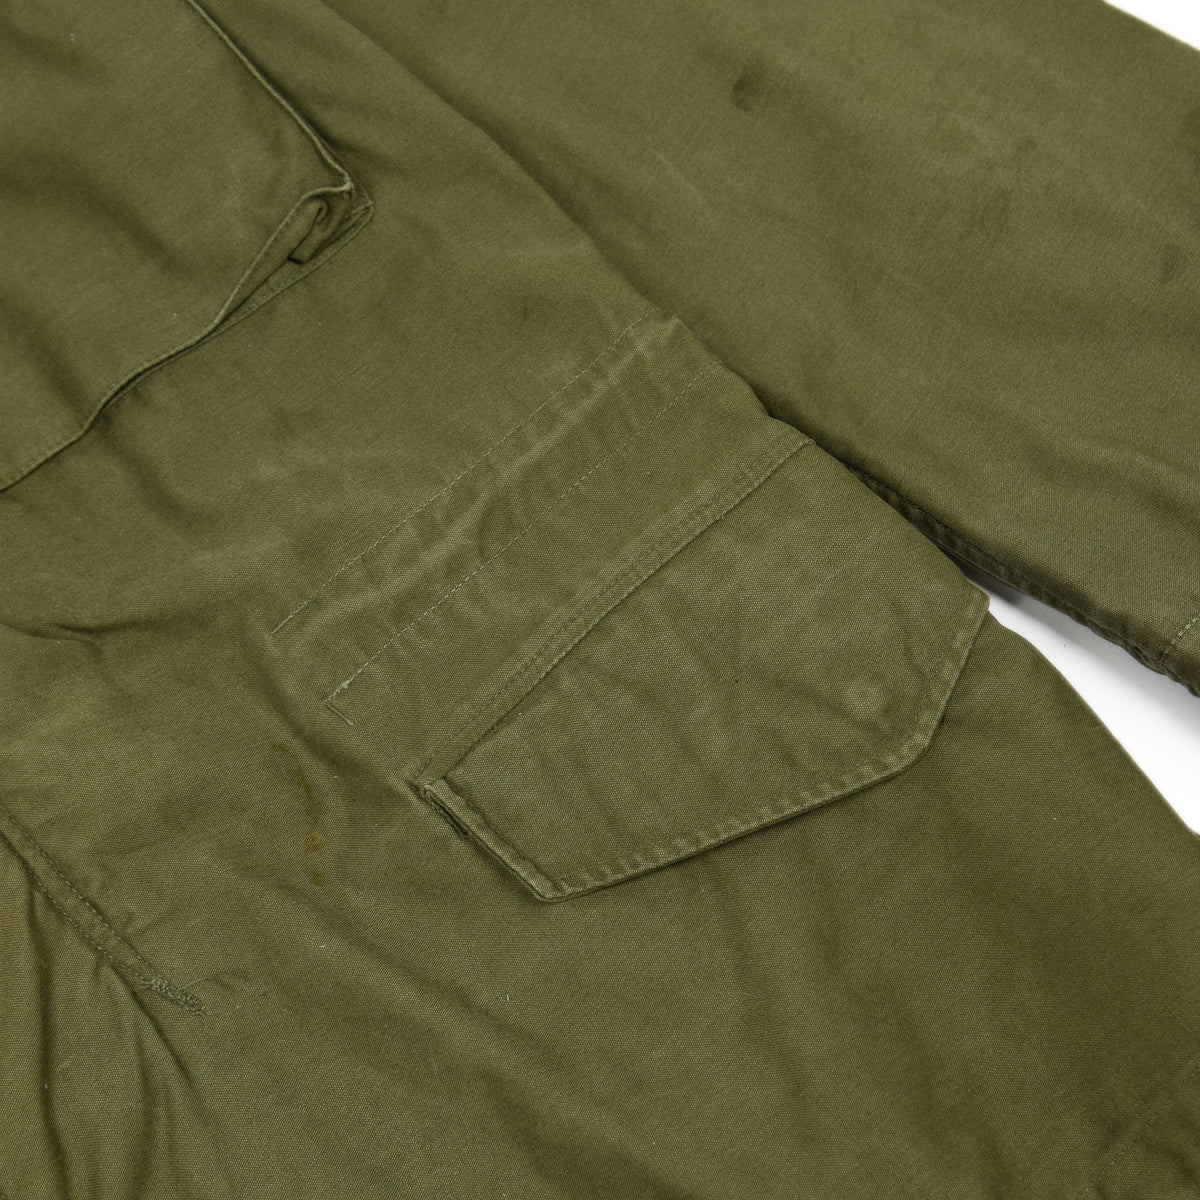 Vintage 60s Vietnam M-65 Man's Field Sateen 0G-107 Green US Army Coat S / M lower pocket